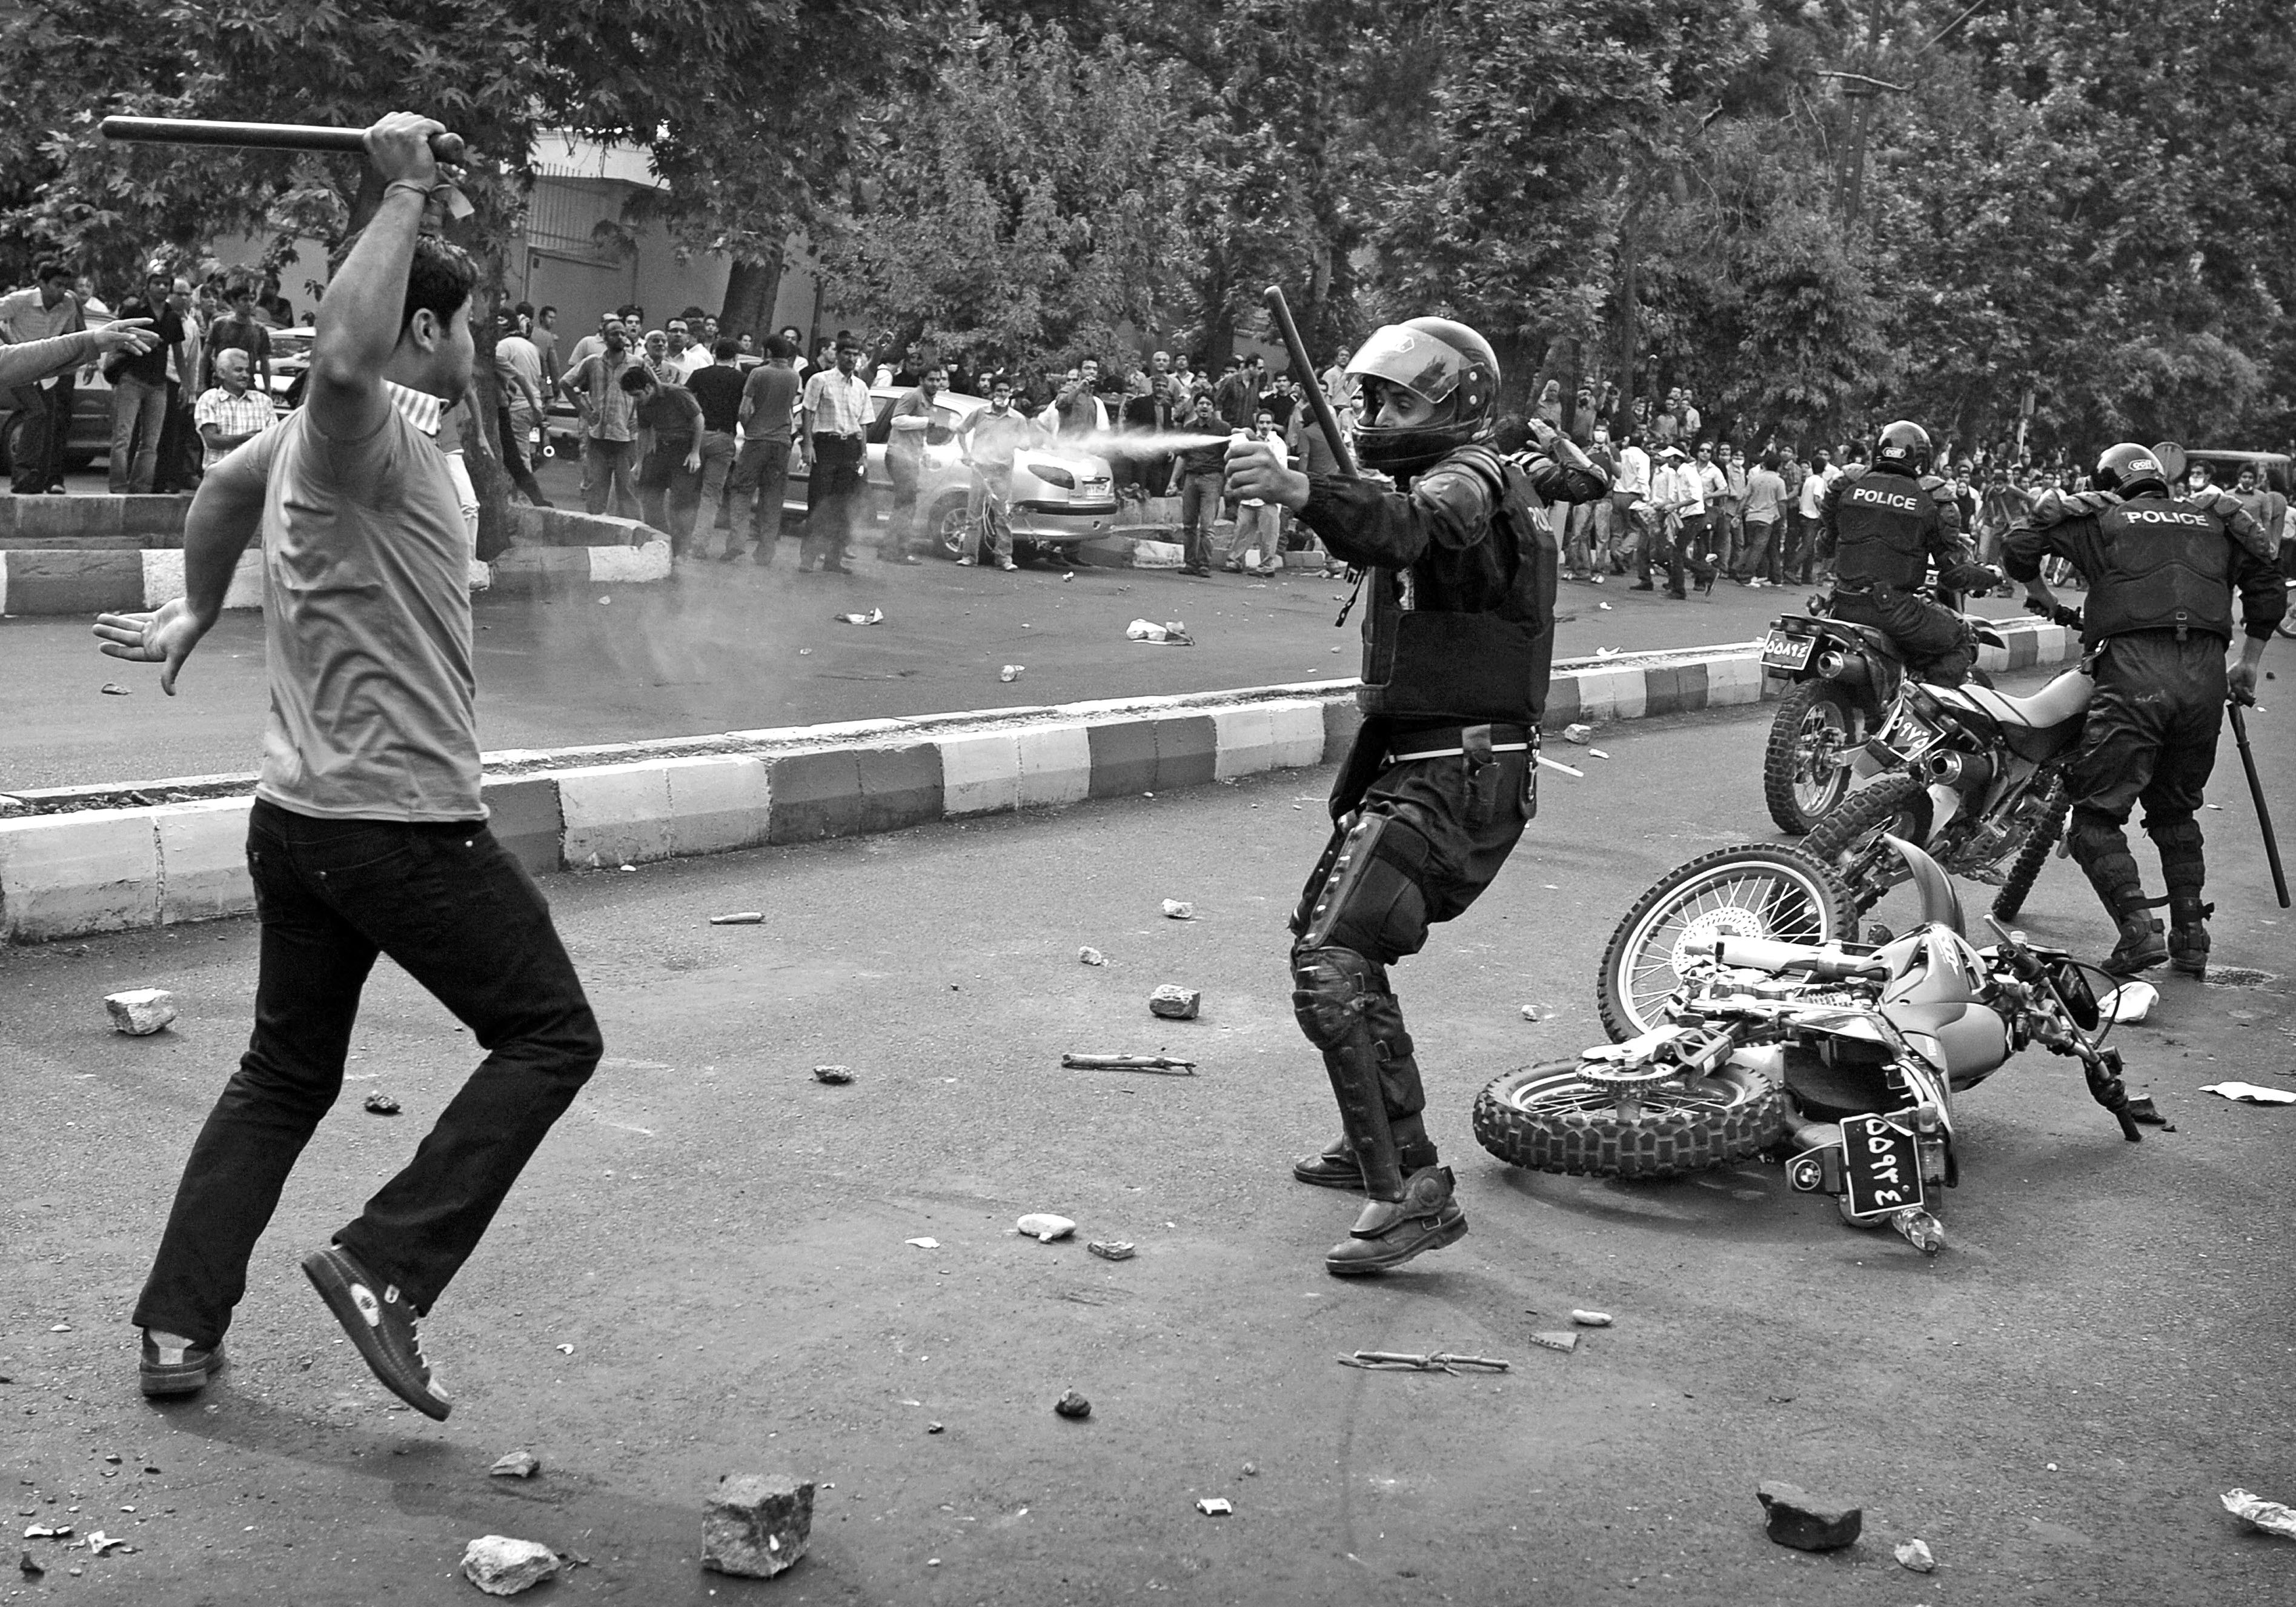 A Iranian riot-police officer sprays tear-gas at a supporter of defeated Iranian presidential candidate Mir Hossein Mousavi attacking him with a police stick during riots in Tehran on June 13, 2009. Hardline incumbent Mahmoud Ahmadinejad won a crushing victory in Iran's hotly-disputed presidential vote, according to official results that triggered mass opposition protests. (Olivier Laban-Mattei/AFP/Getty Images)